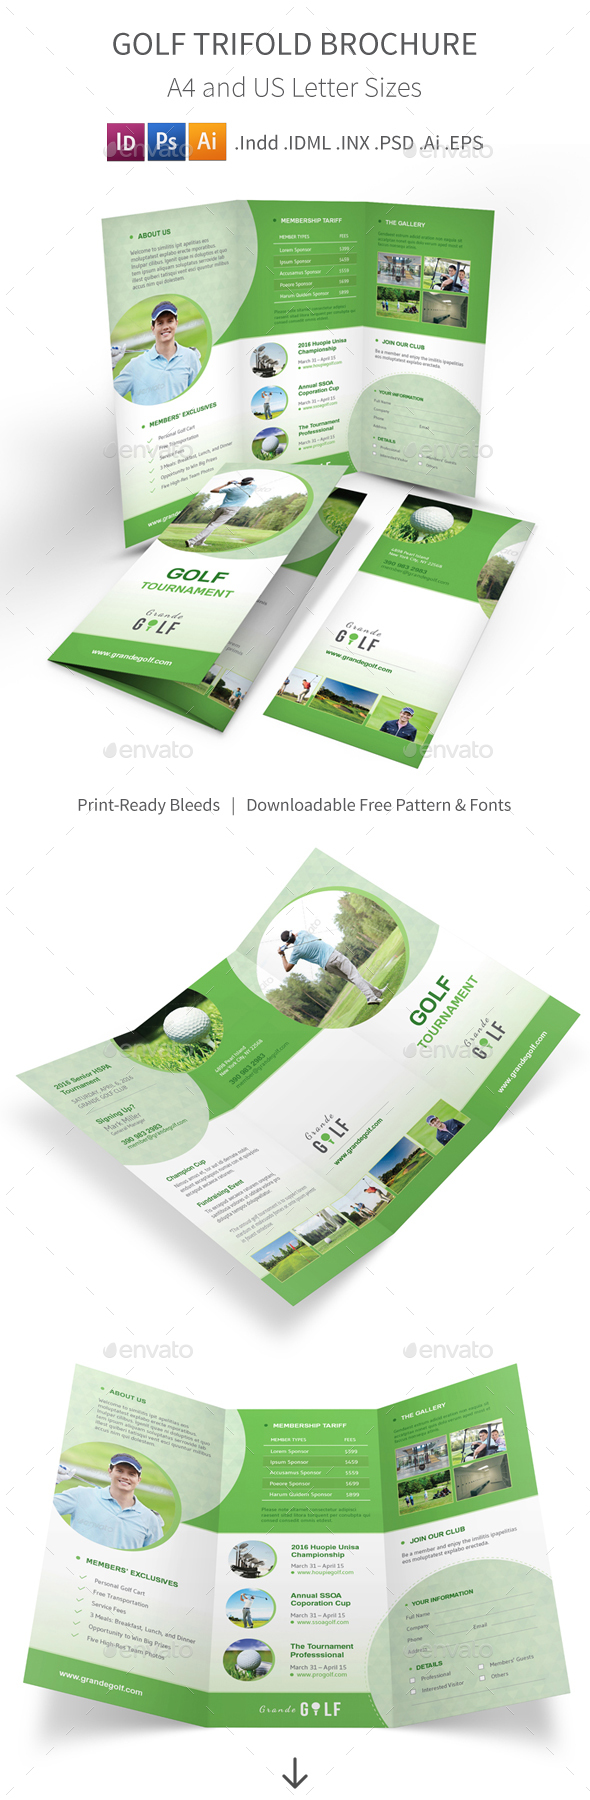 Golf Tournament Trifold Brochure 3 - Informational Brochures